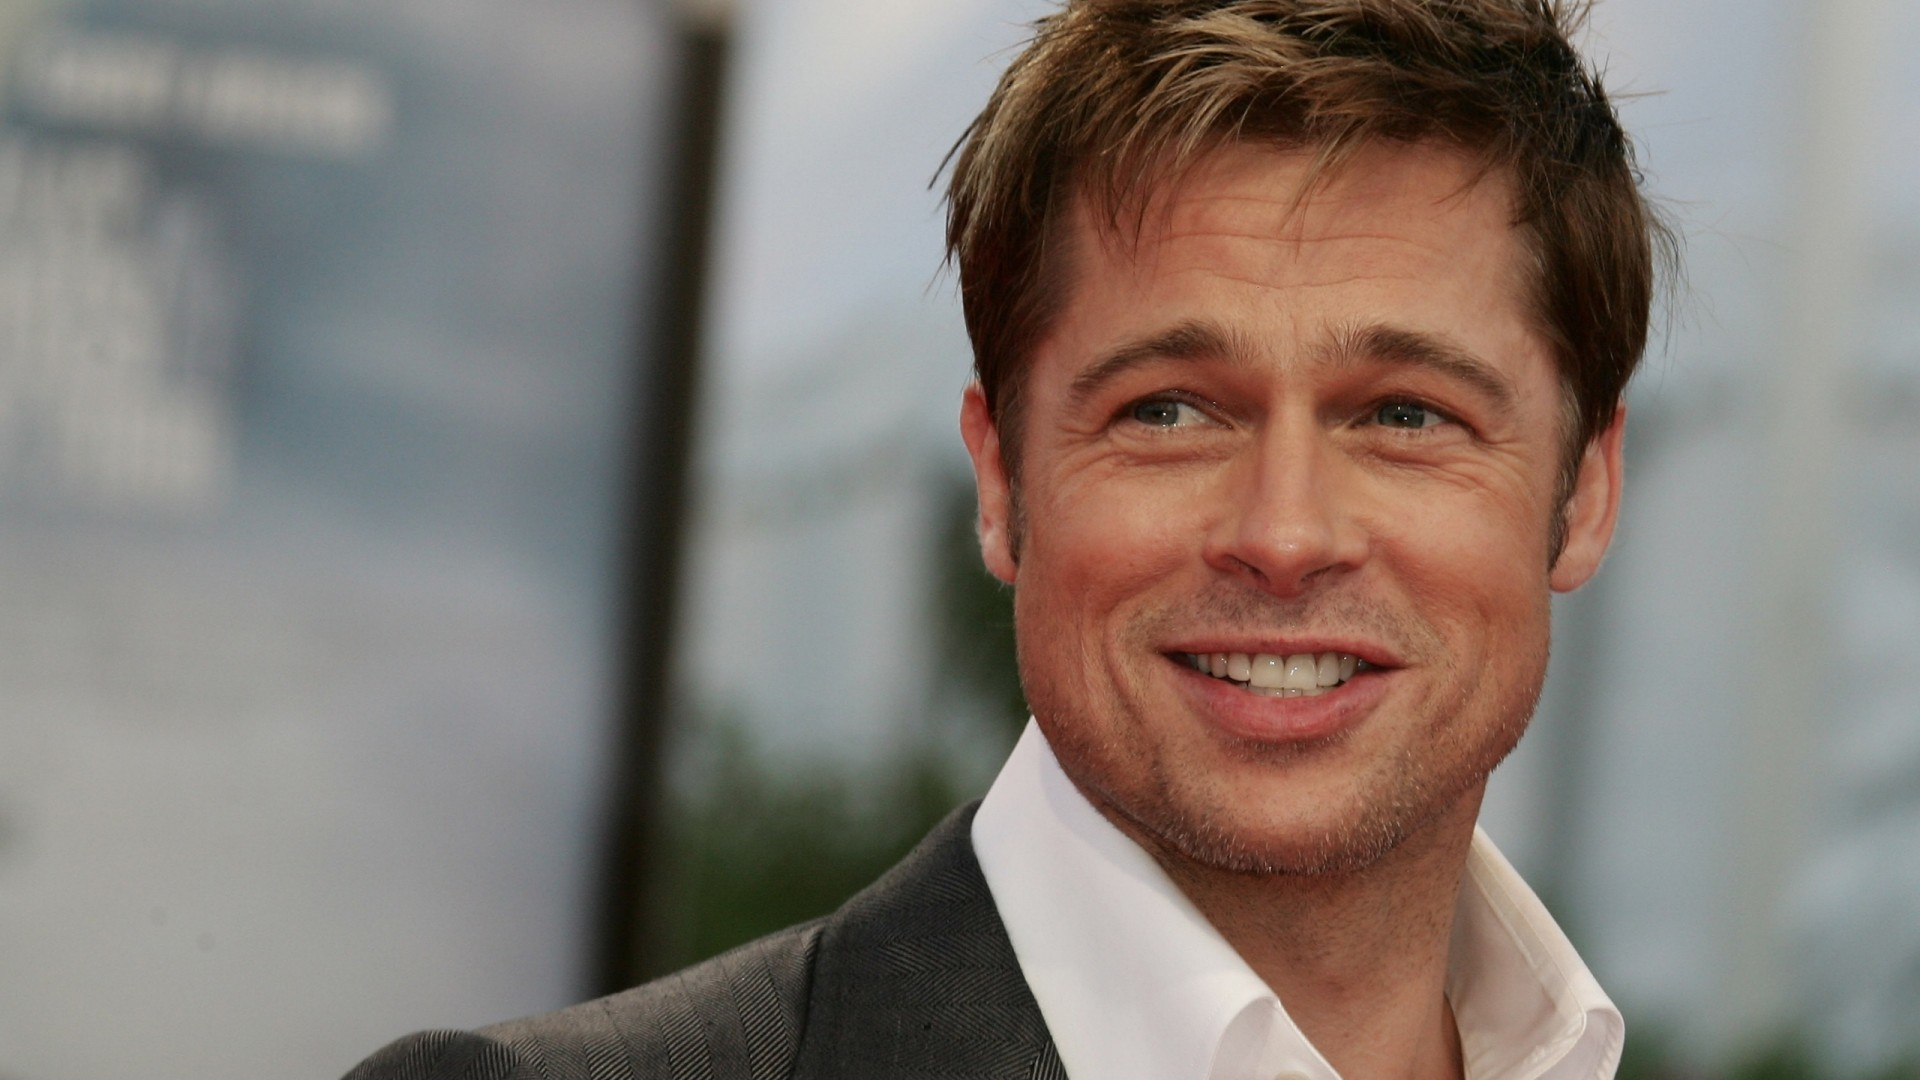 Brad Pitt Cool Smile Photo Pictures HD Desktop Wallpaper Widescreen Desktop